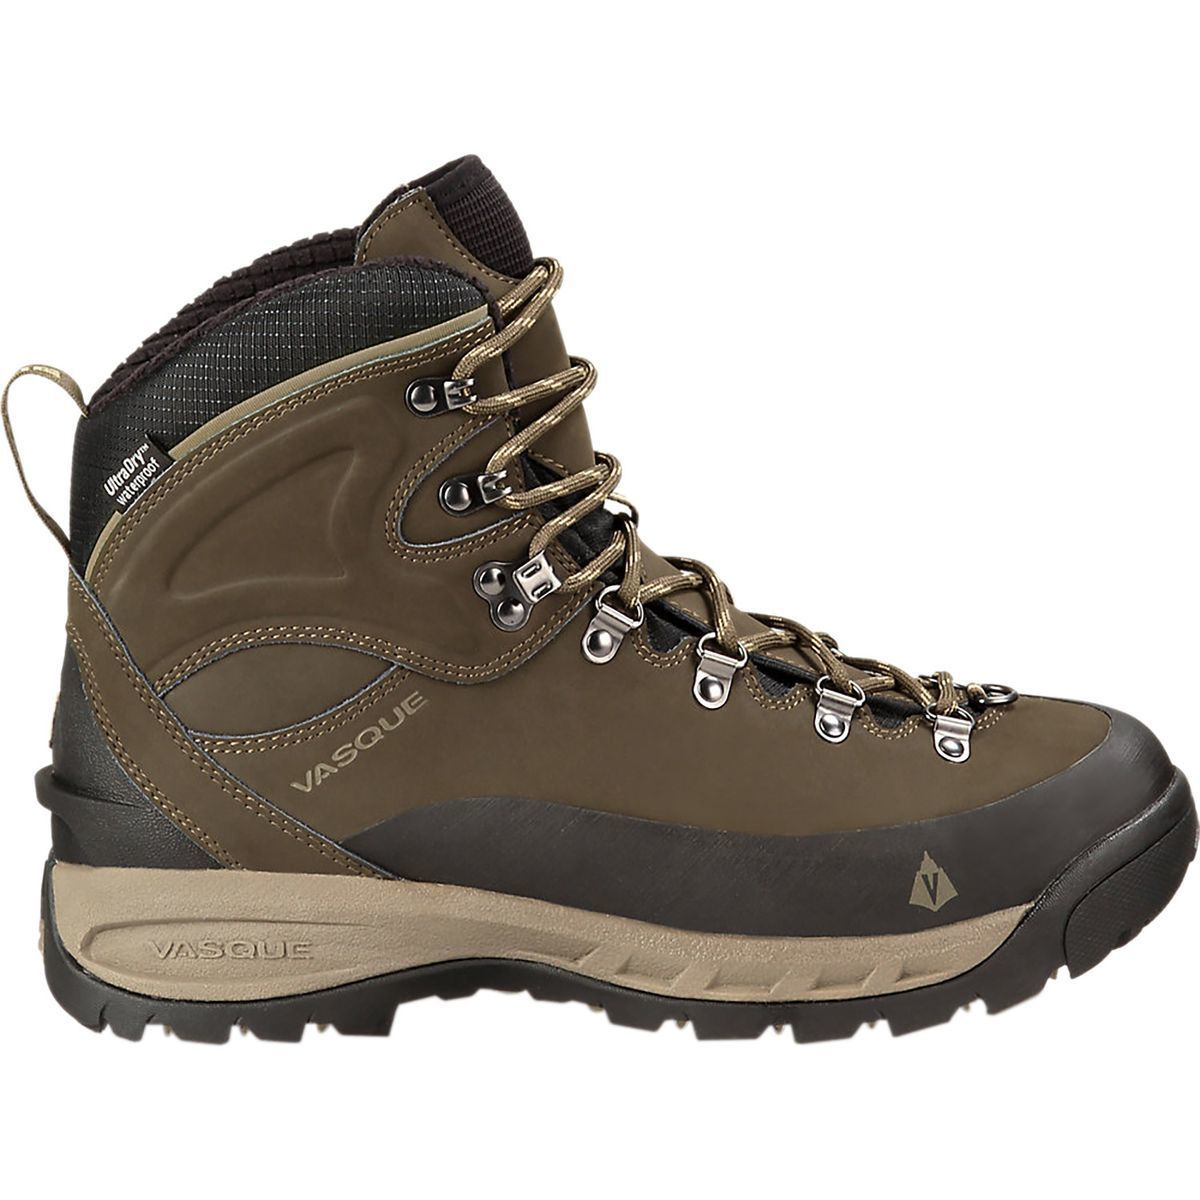 cf58c7391b6 Ozark Trail Hikers Reviews - Trailspace